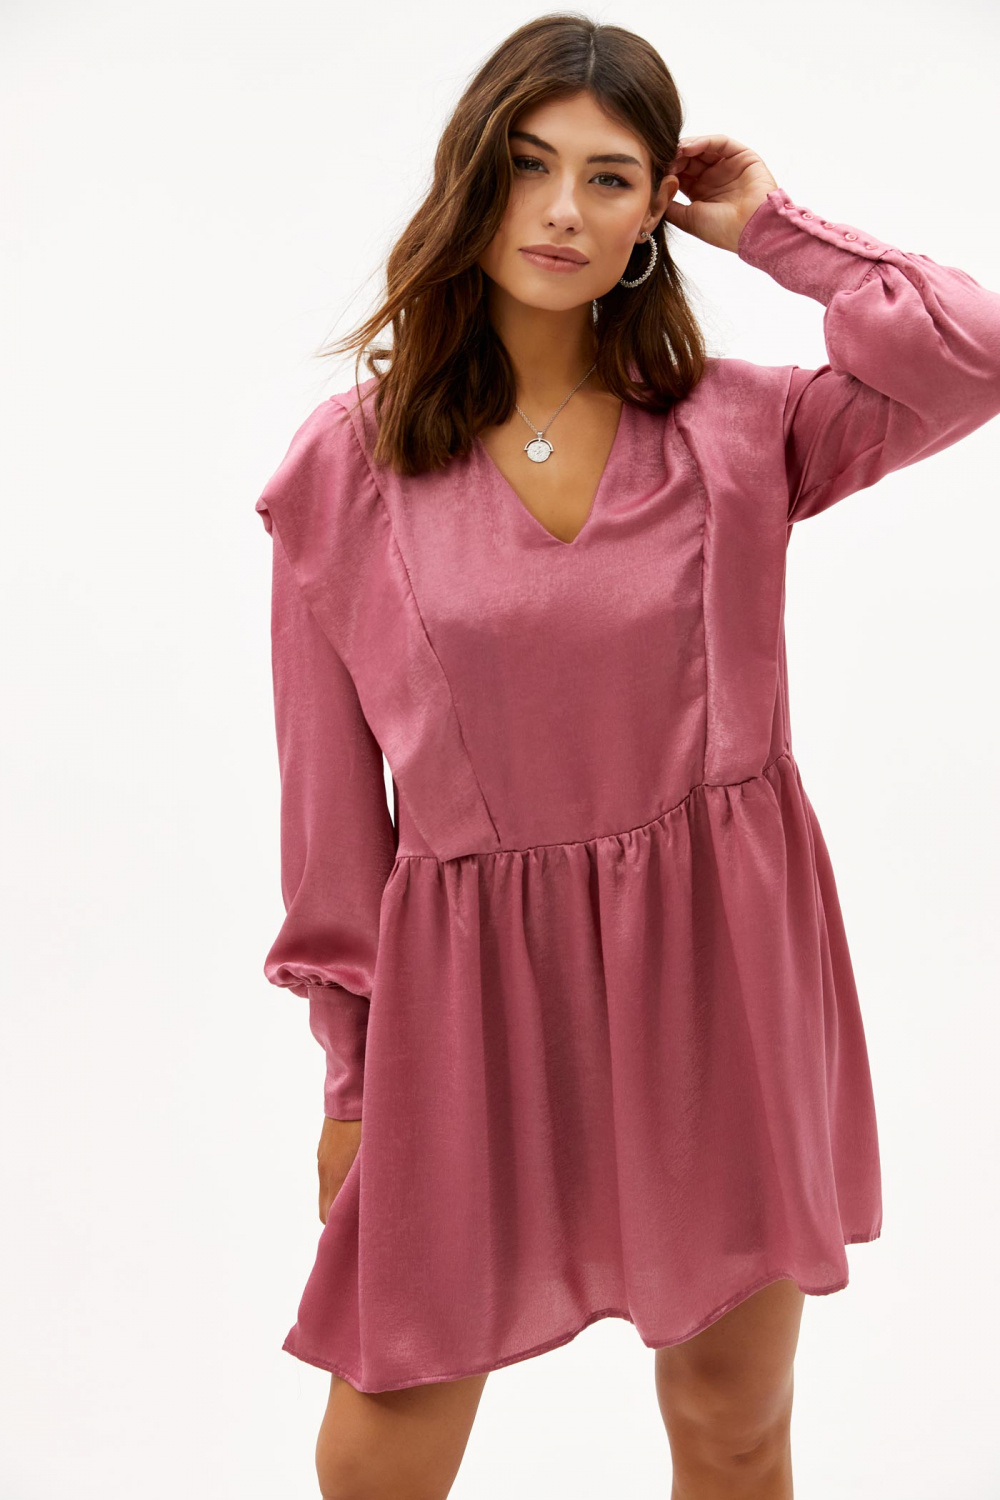 LO Another You Dress Pink